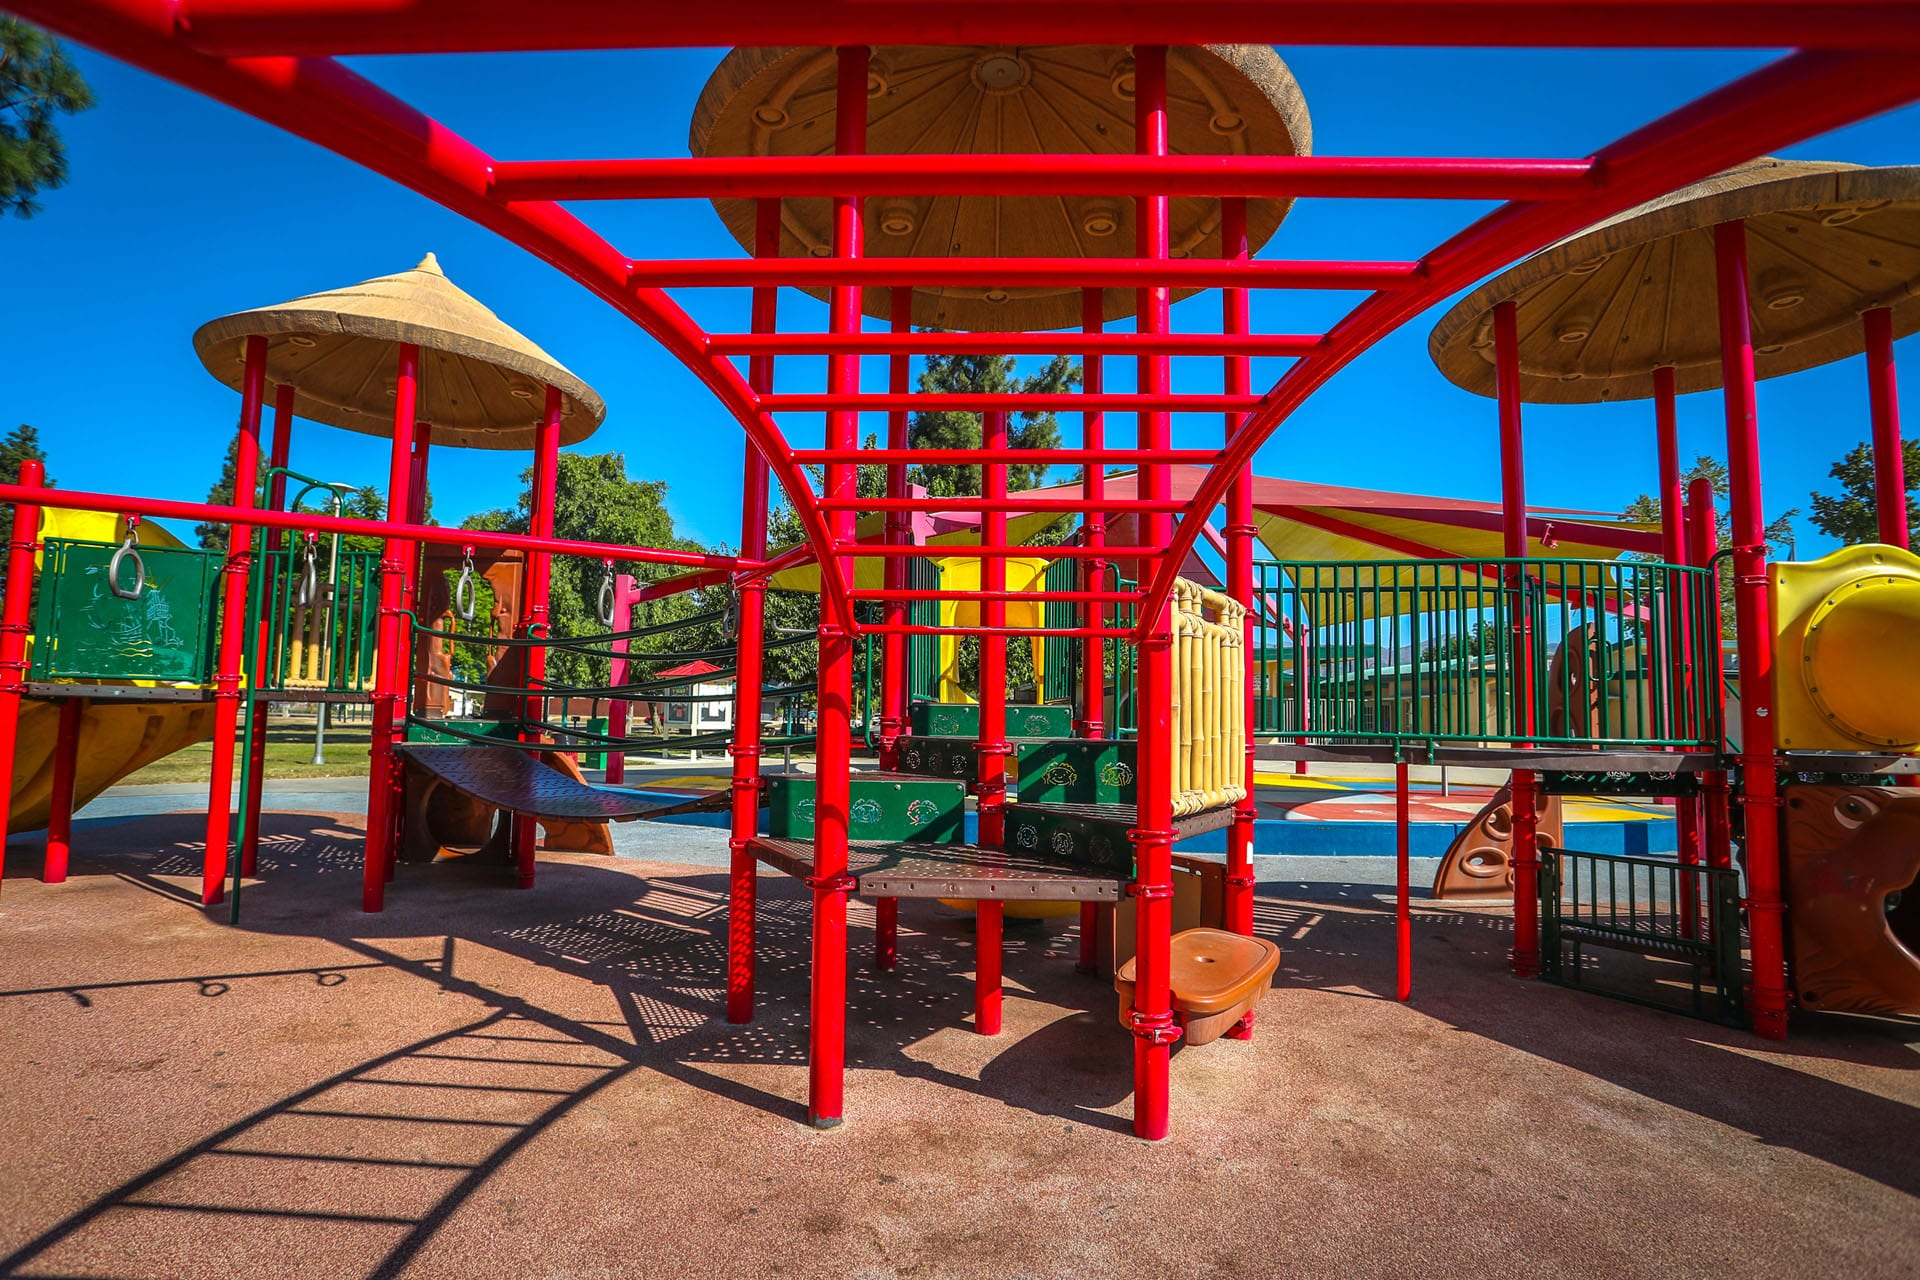 Monkey bars in a playground